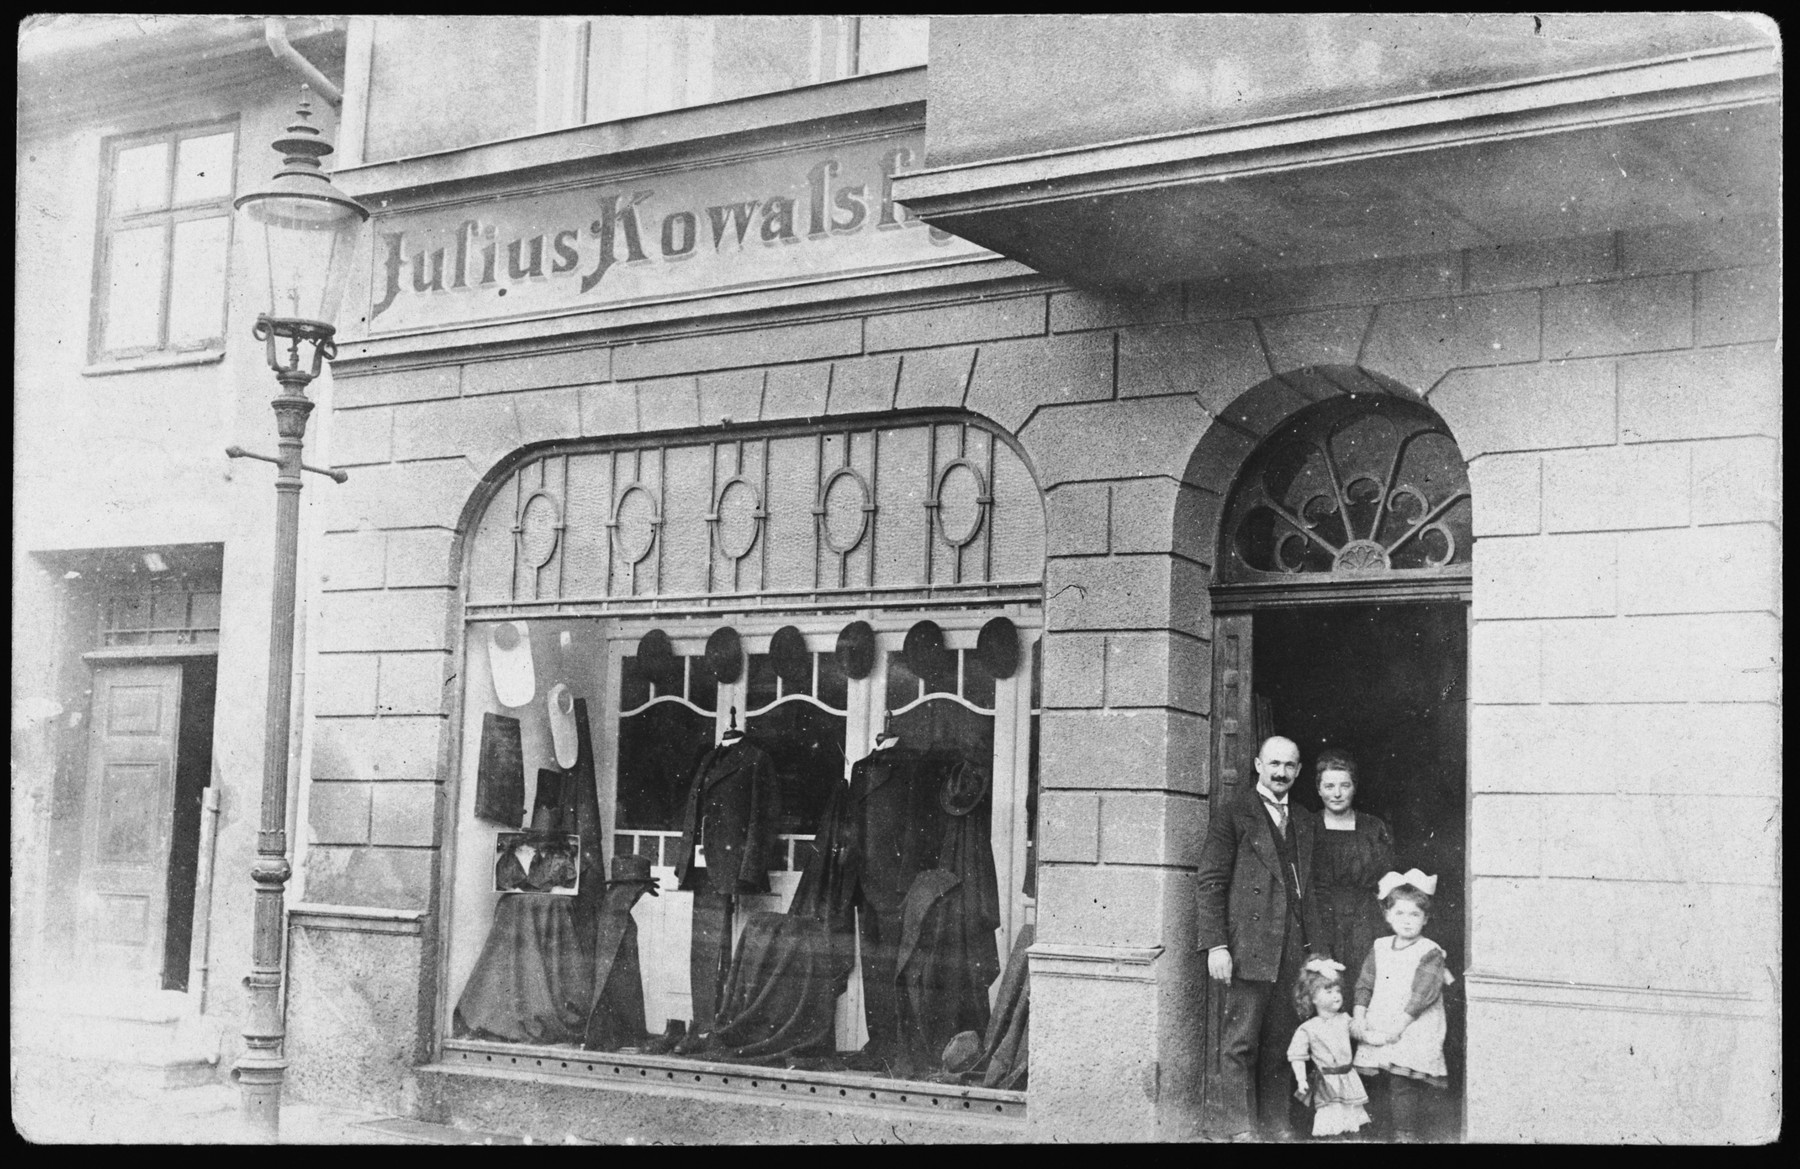 A German family poses outside its clothing store in East Prussia.   Pictured are Julius Kowalsky, his wife and daughter Gertrude (mother of the donor).